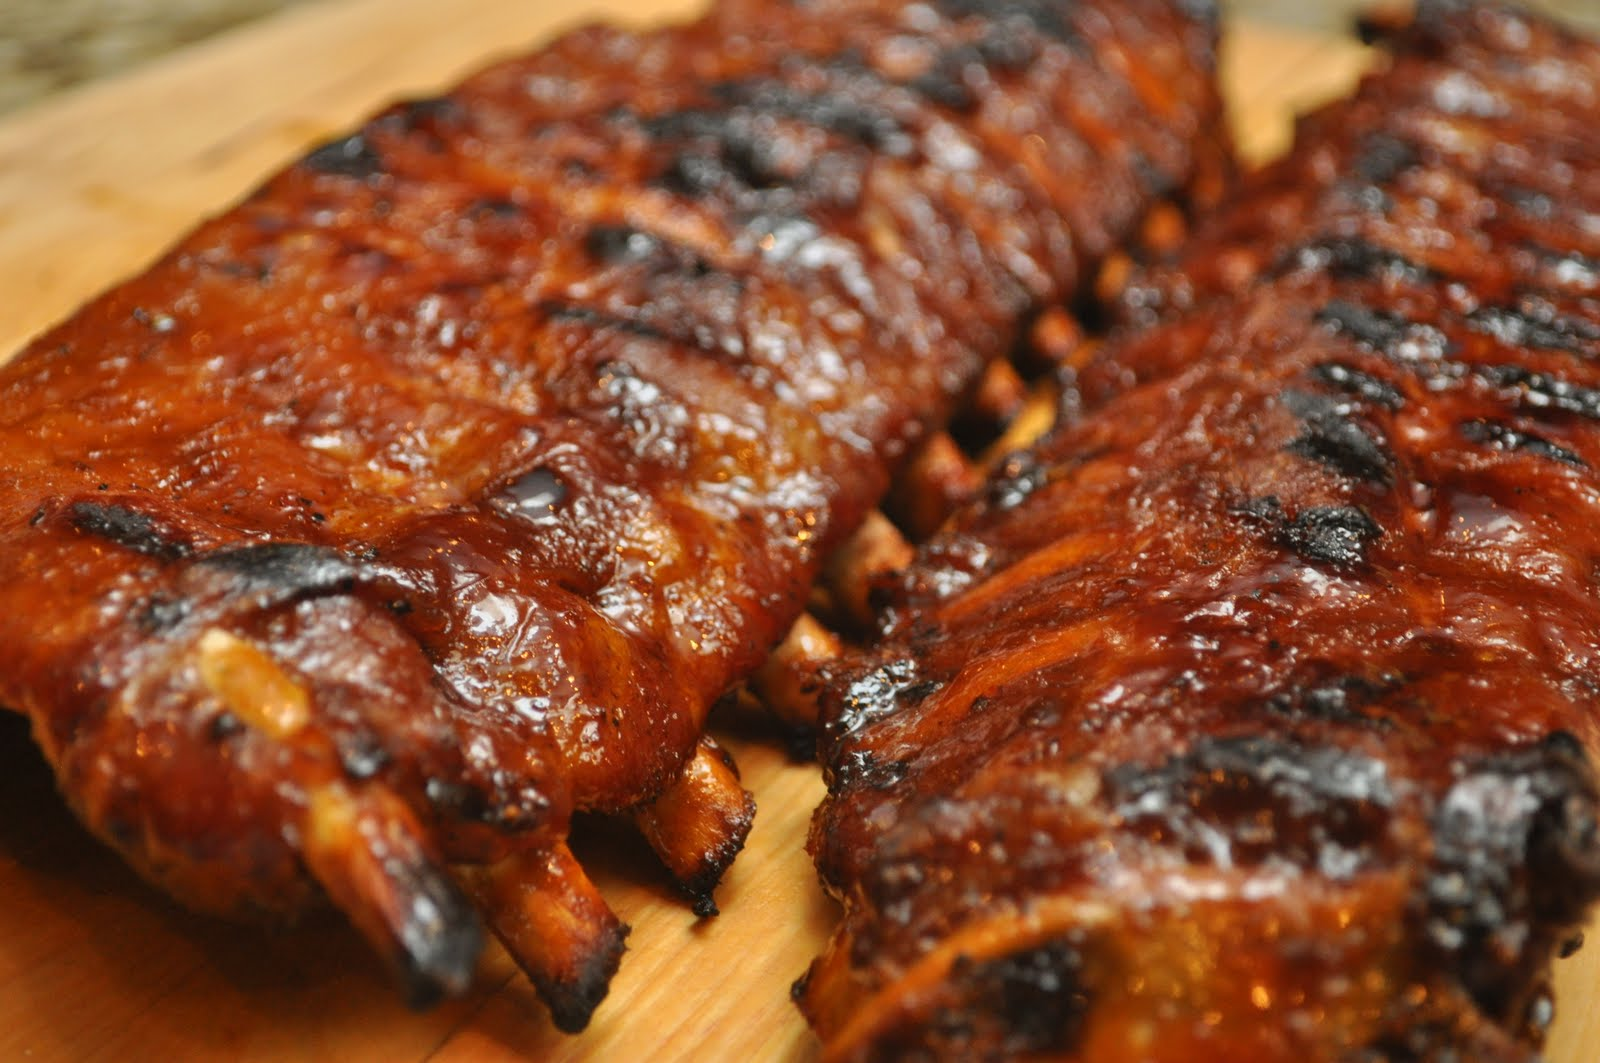 Bon appetite's Best Ever Barbecued Ribs | Recipes Squared